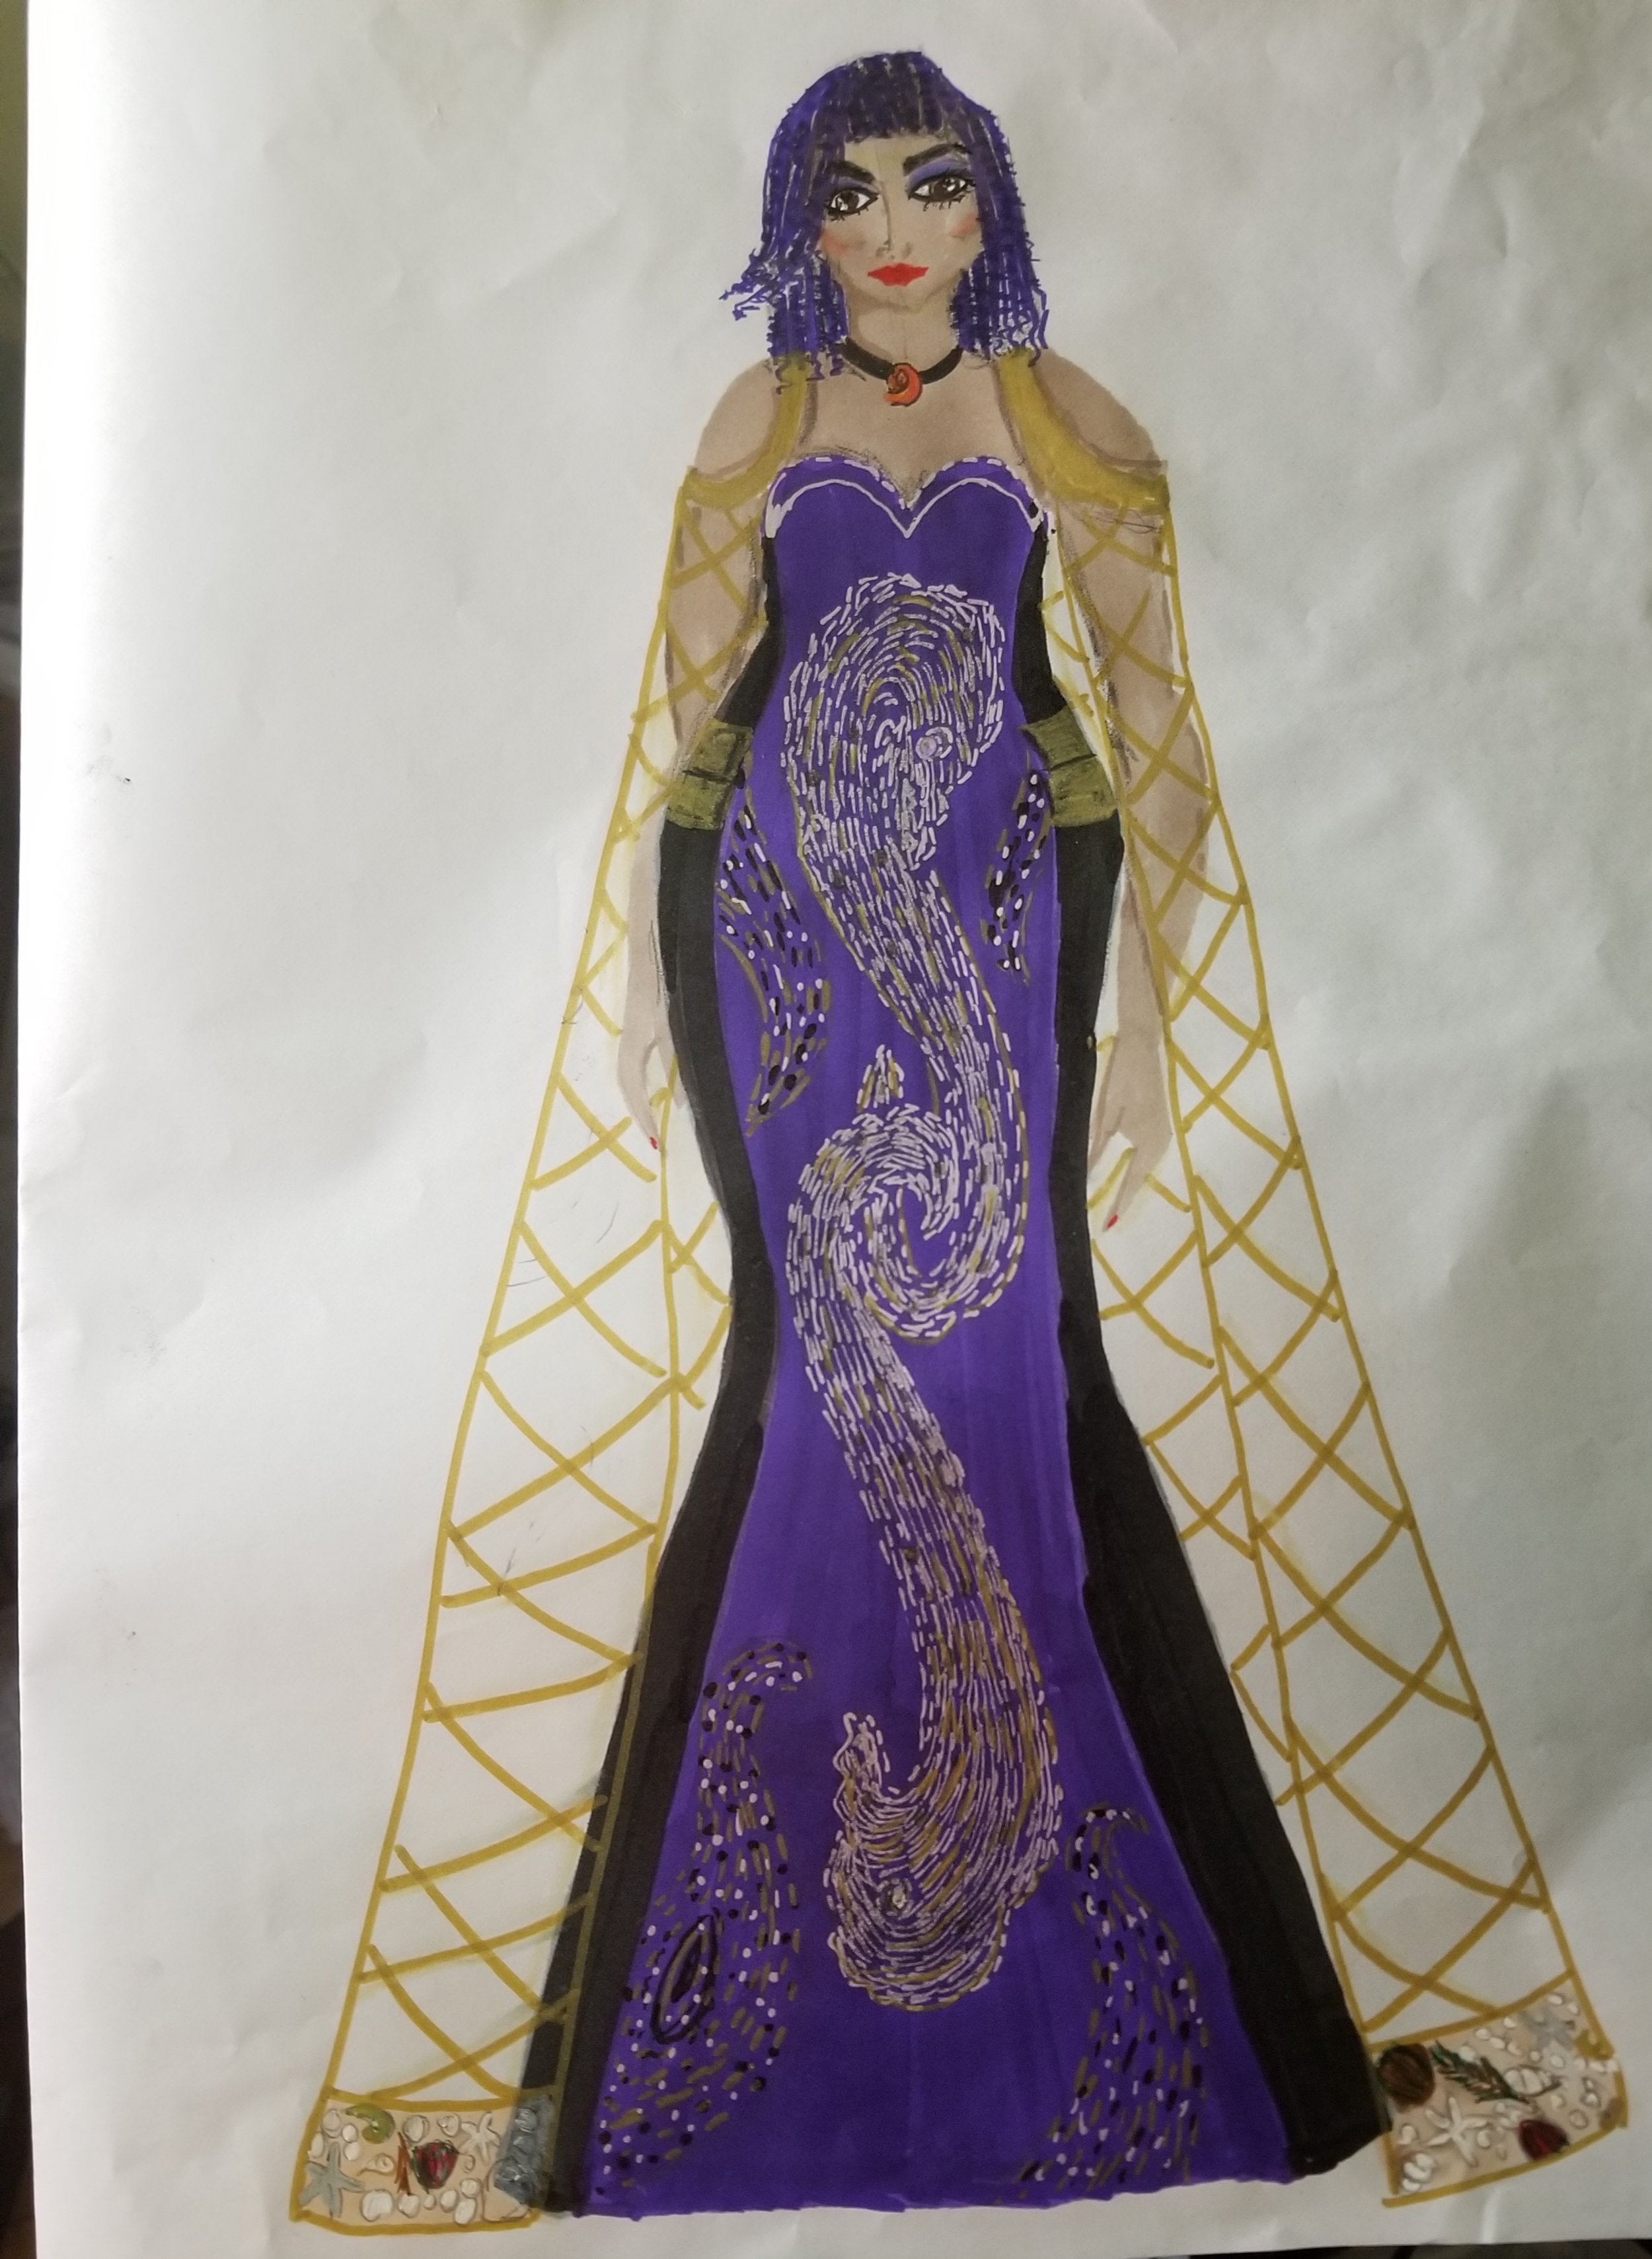 Ursula in Royalty inspired by The Little Mermaid by Chanelle Childers